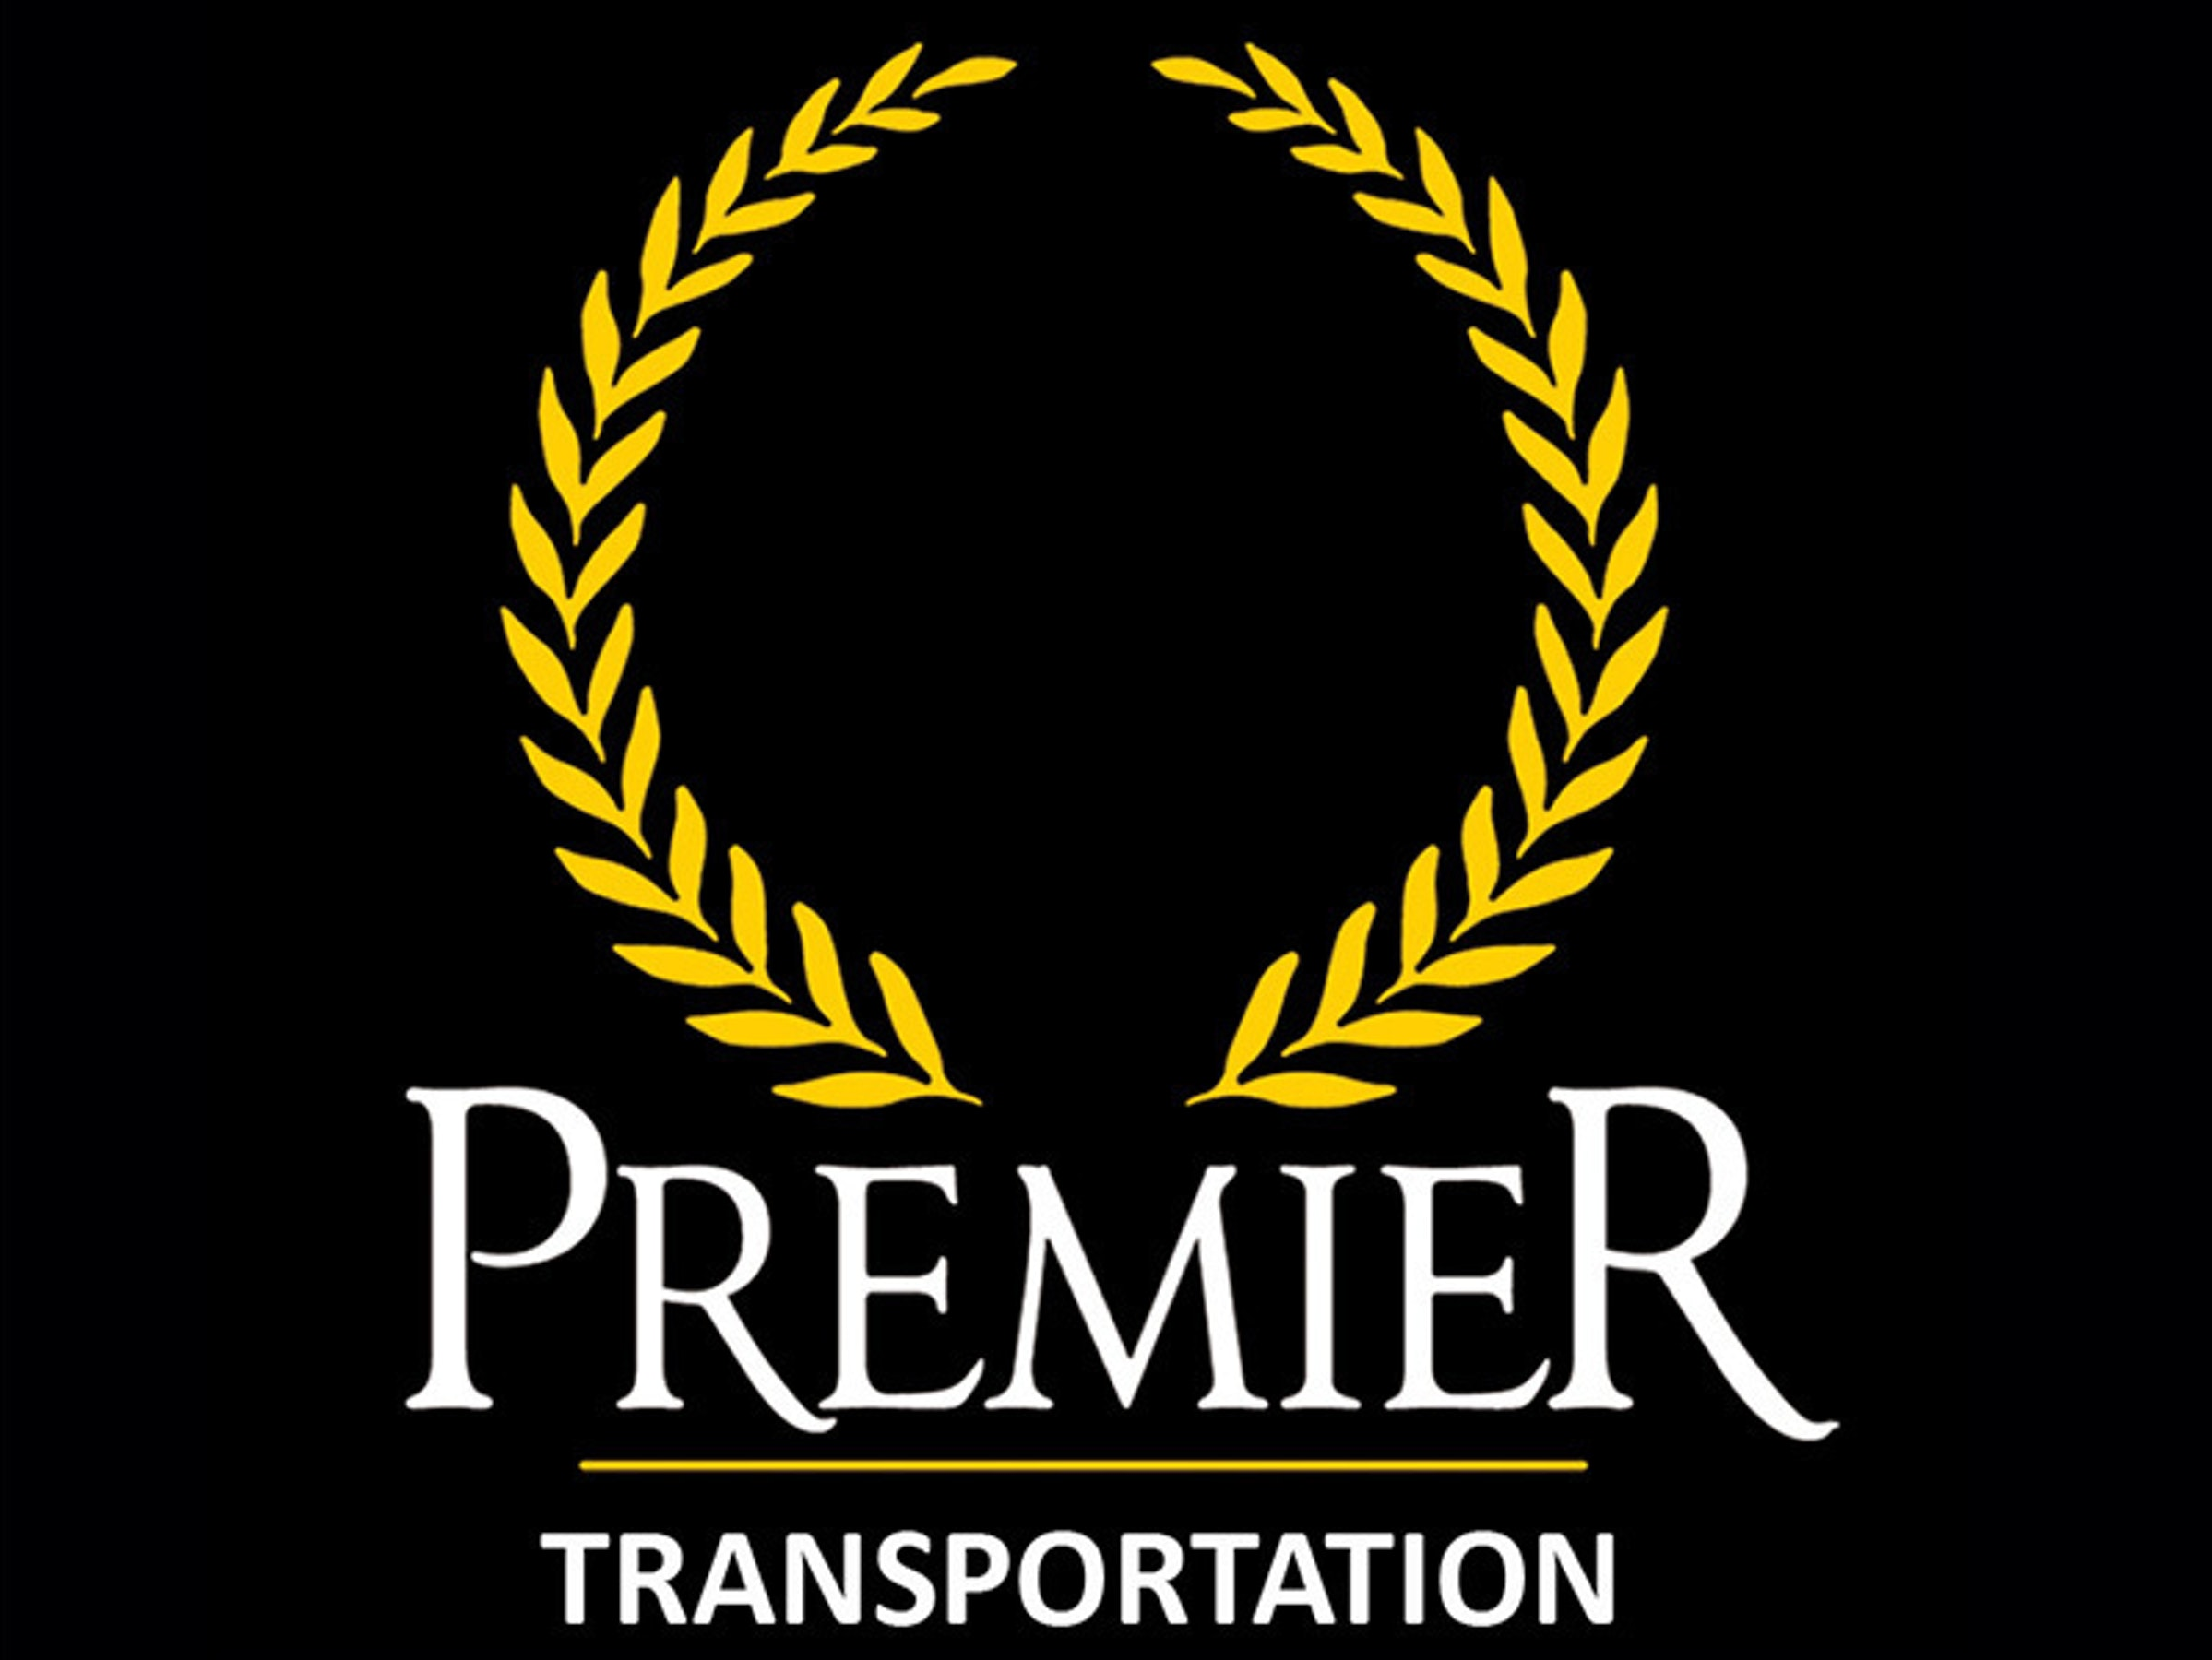 Premier Transportation Services in Beyond Dallas